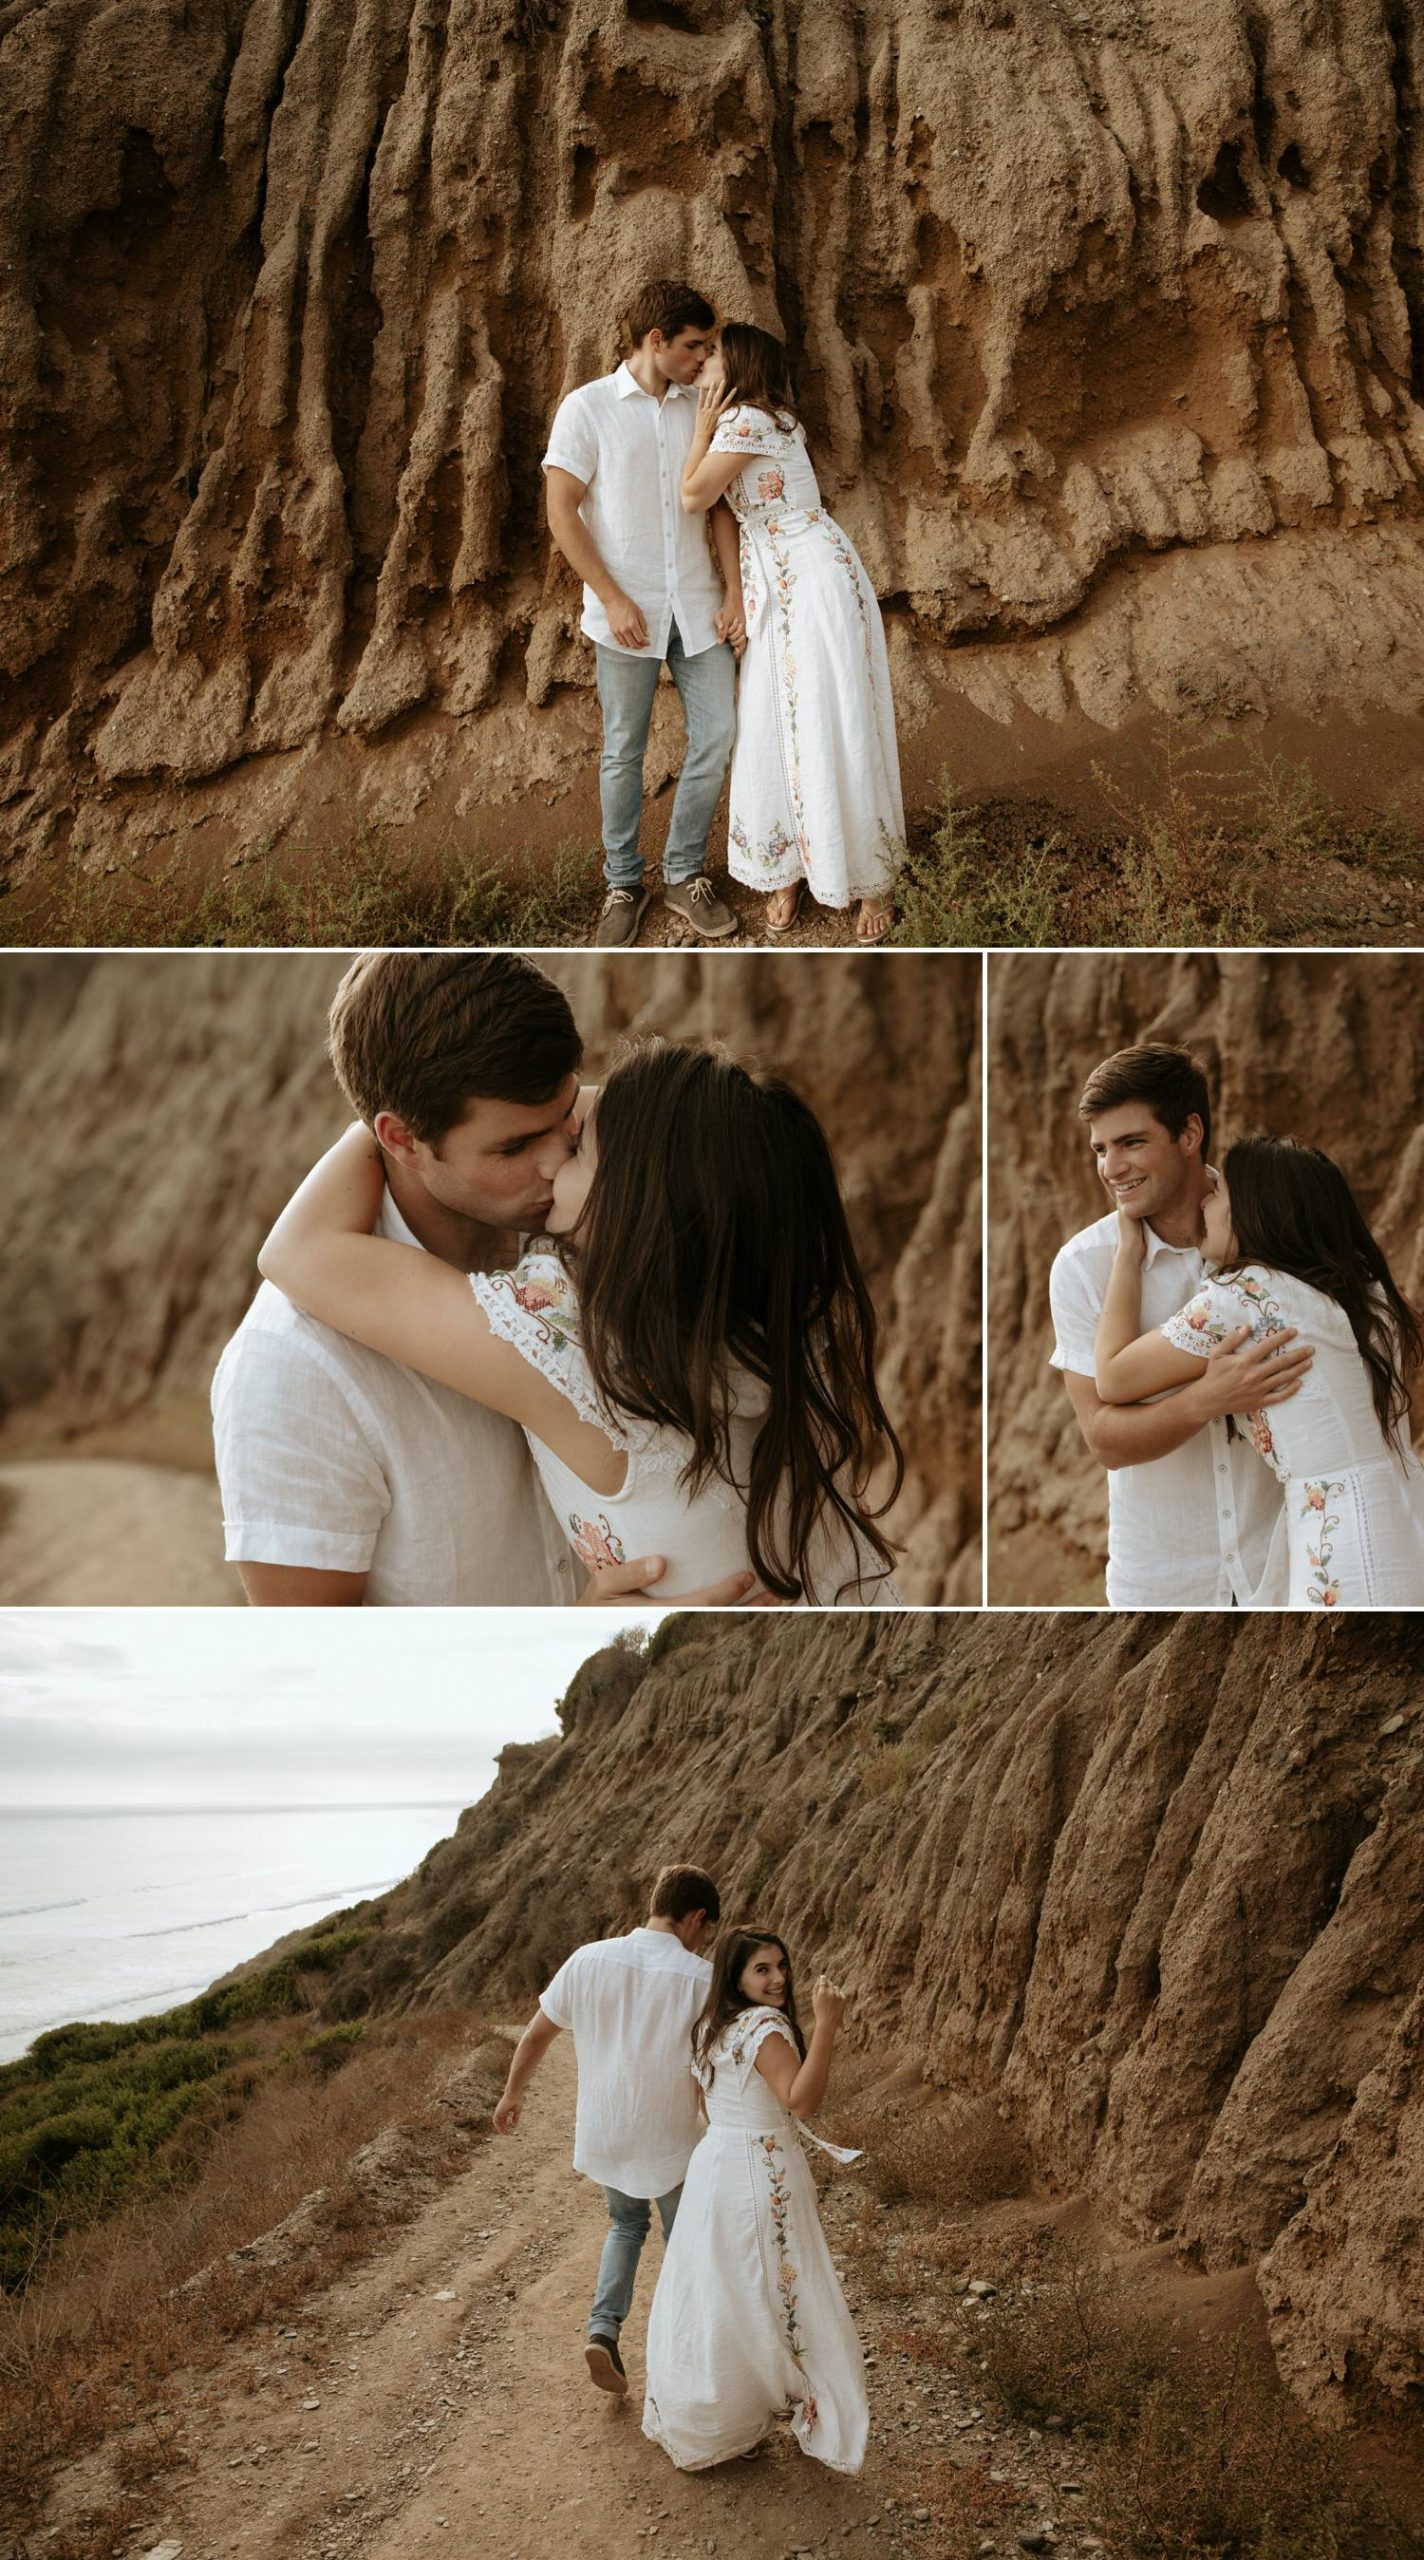 Orange County engagement photo locations